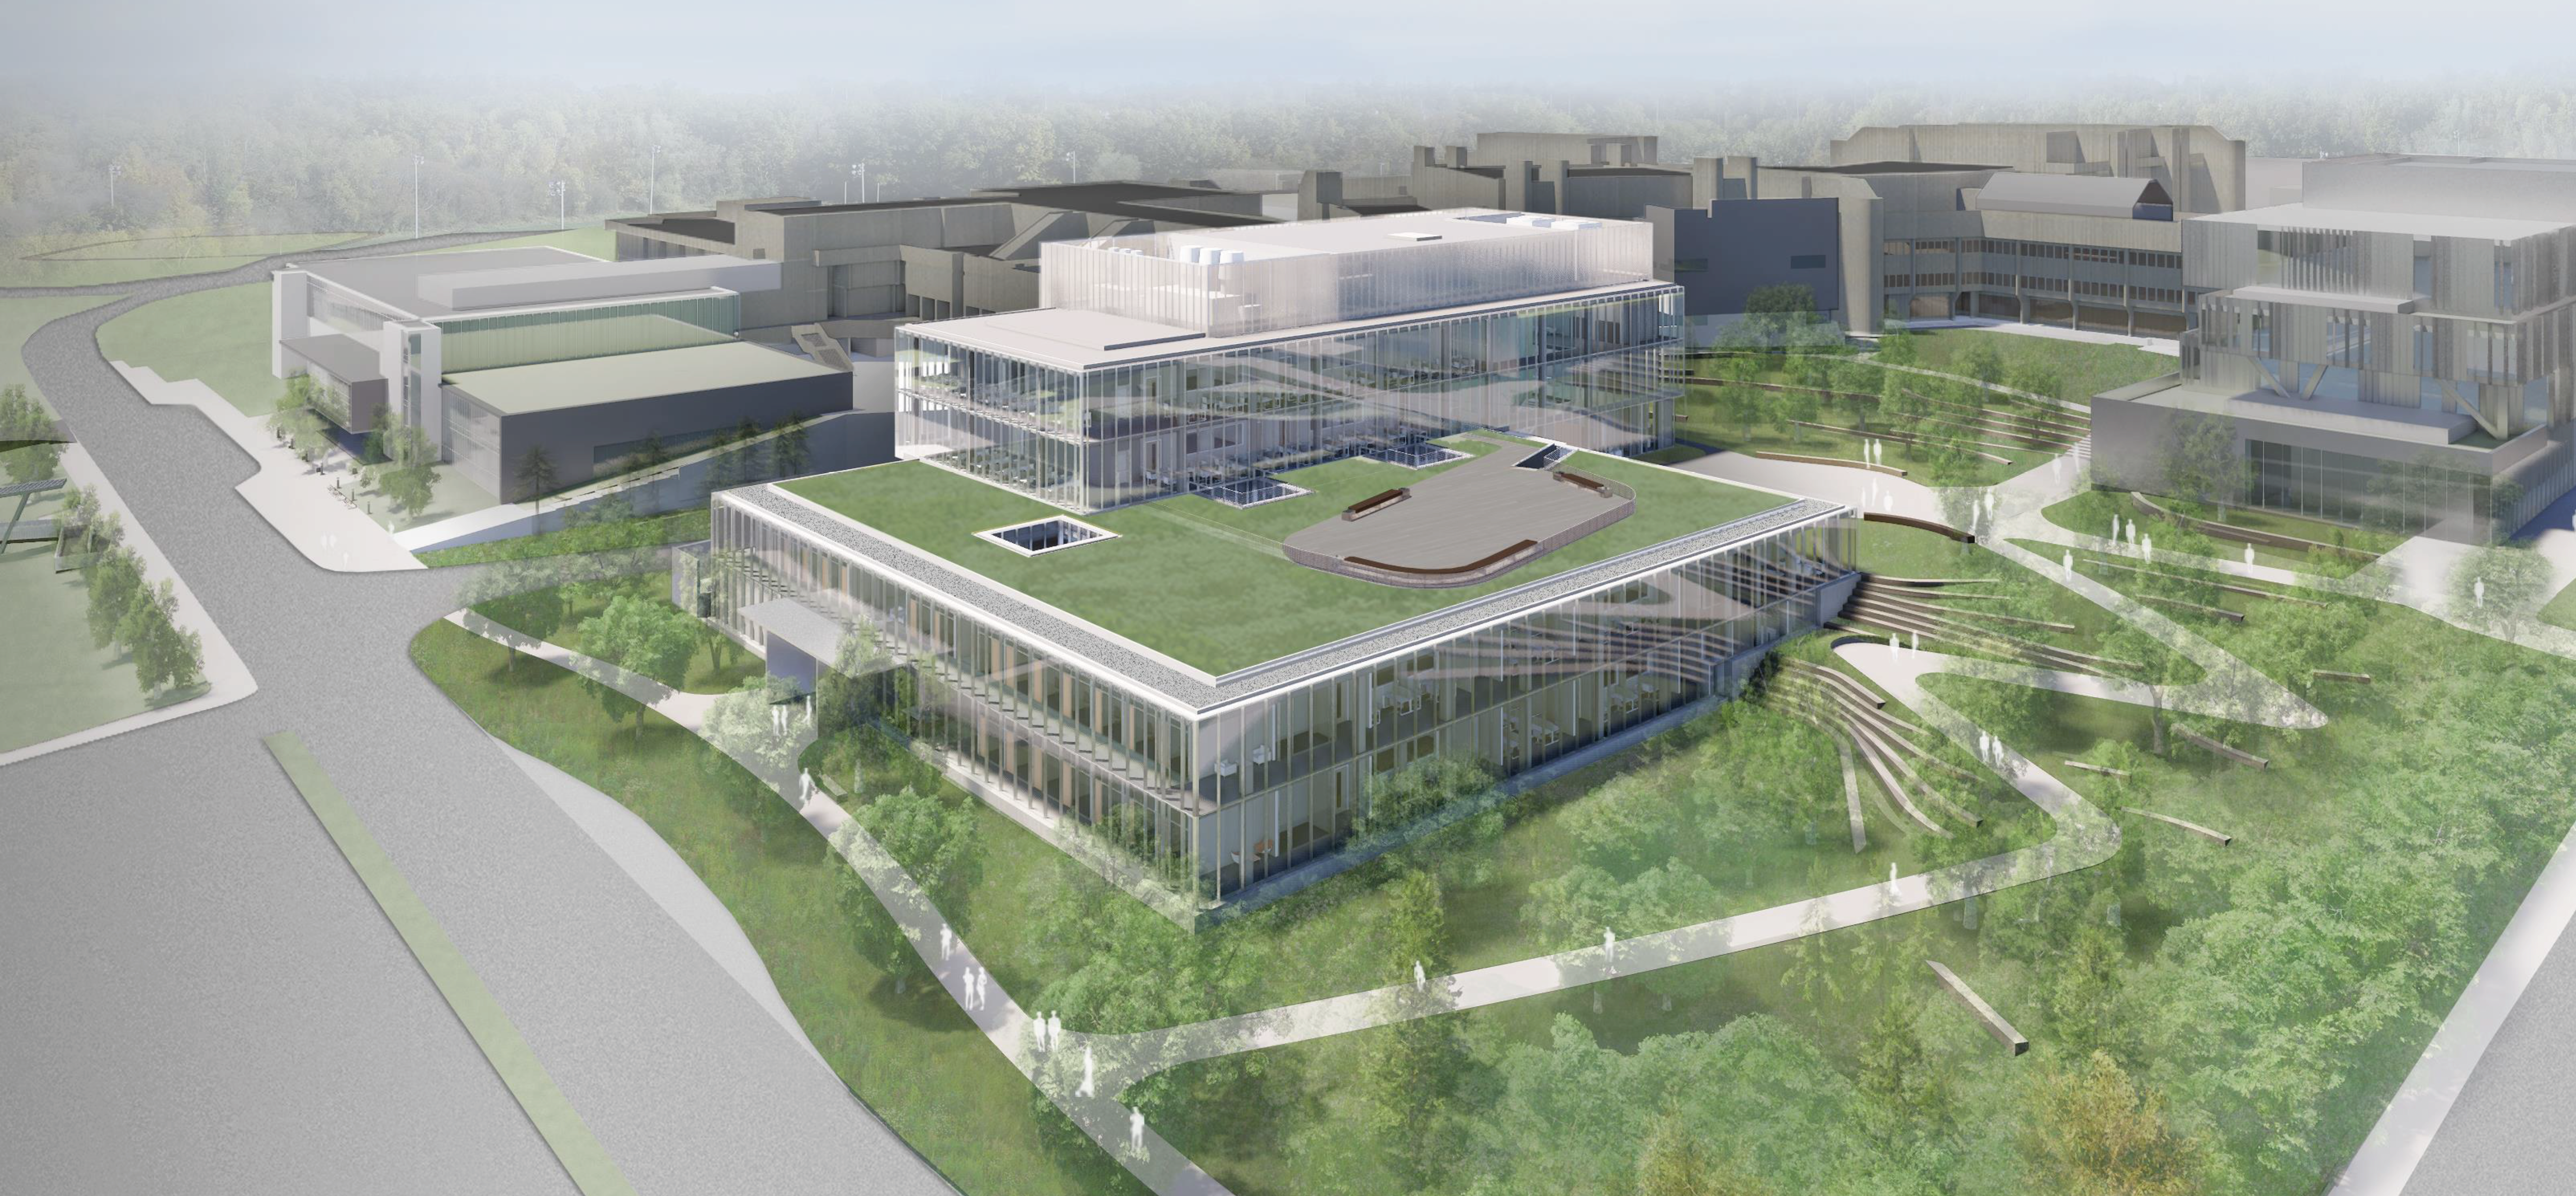 Architectural rendering of the new science building under construction at UTM